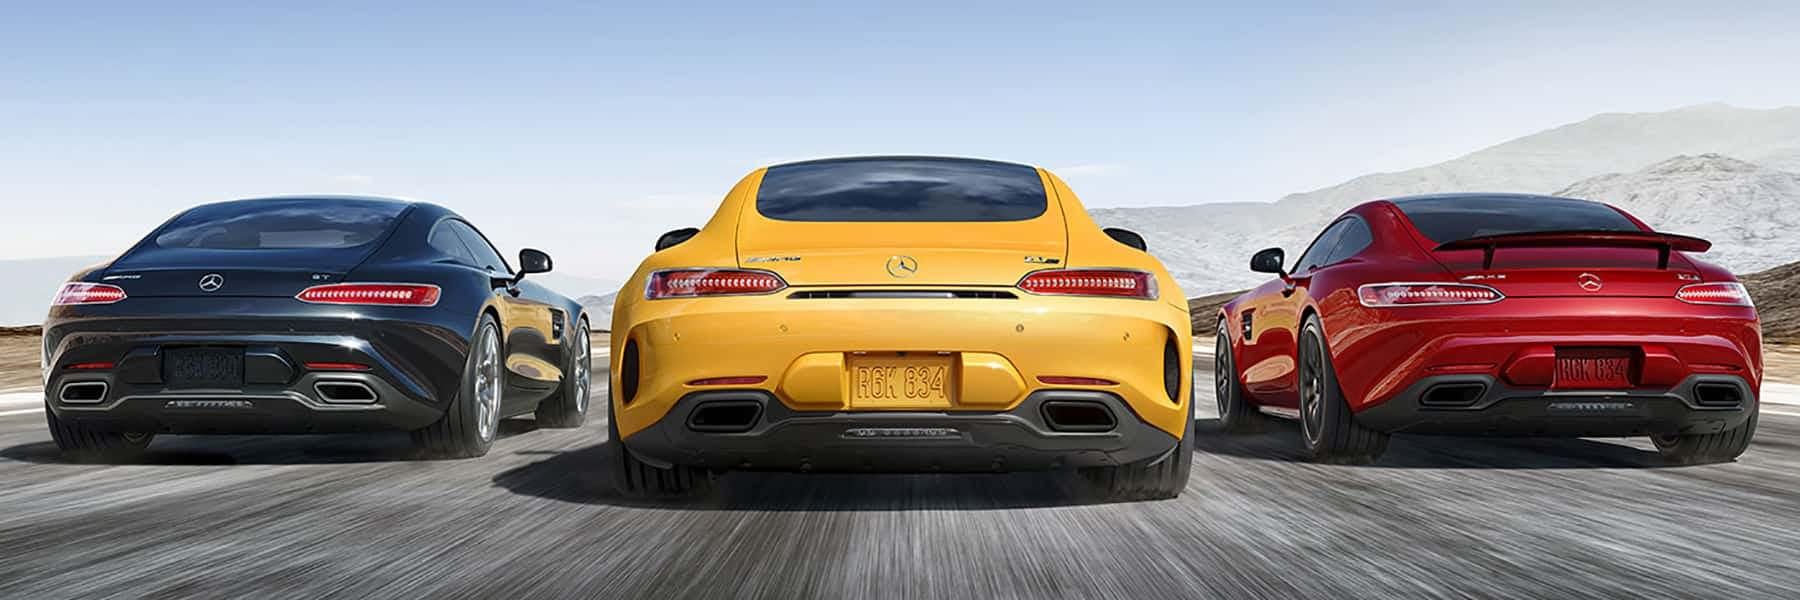 AMG-GT-COUPE